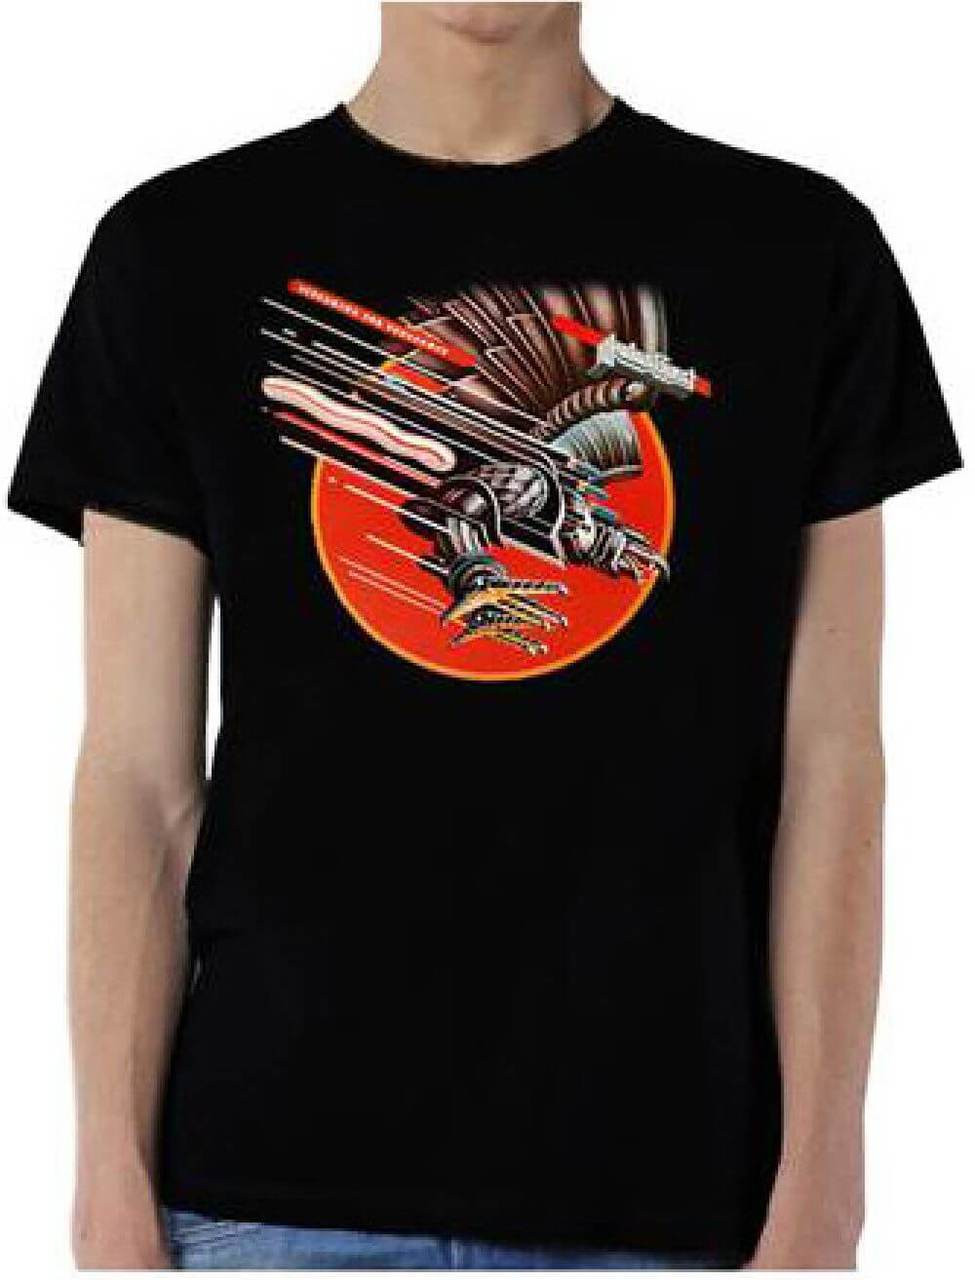 19530a92799 Judas Priest Screaming for Vengeance Album Cover Artwork Men's Black T-shirt